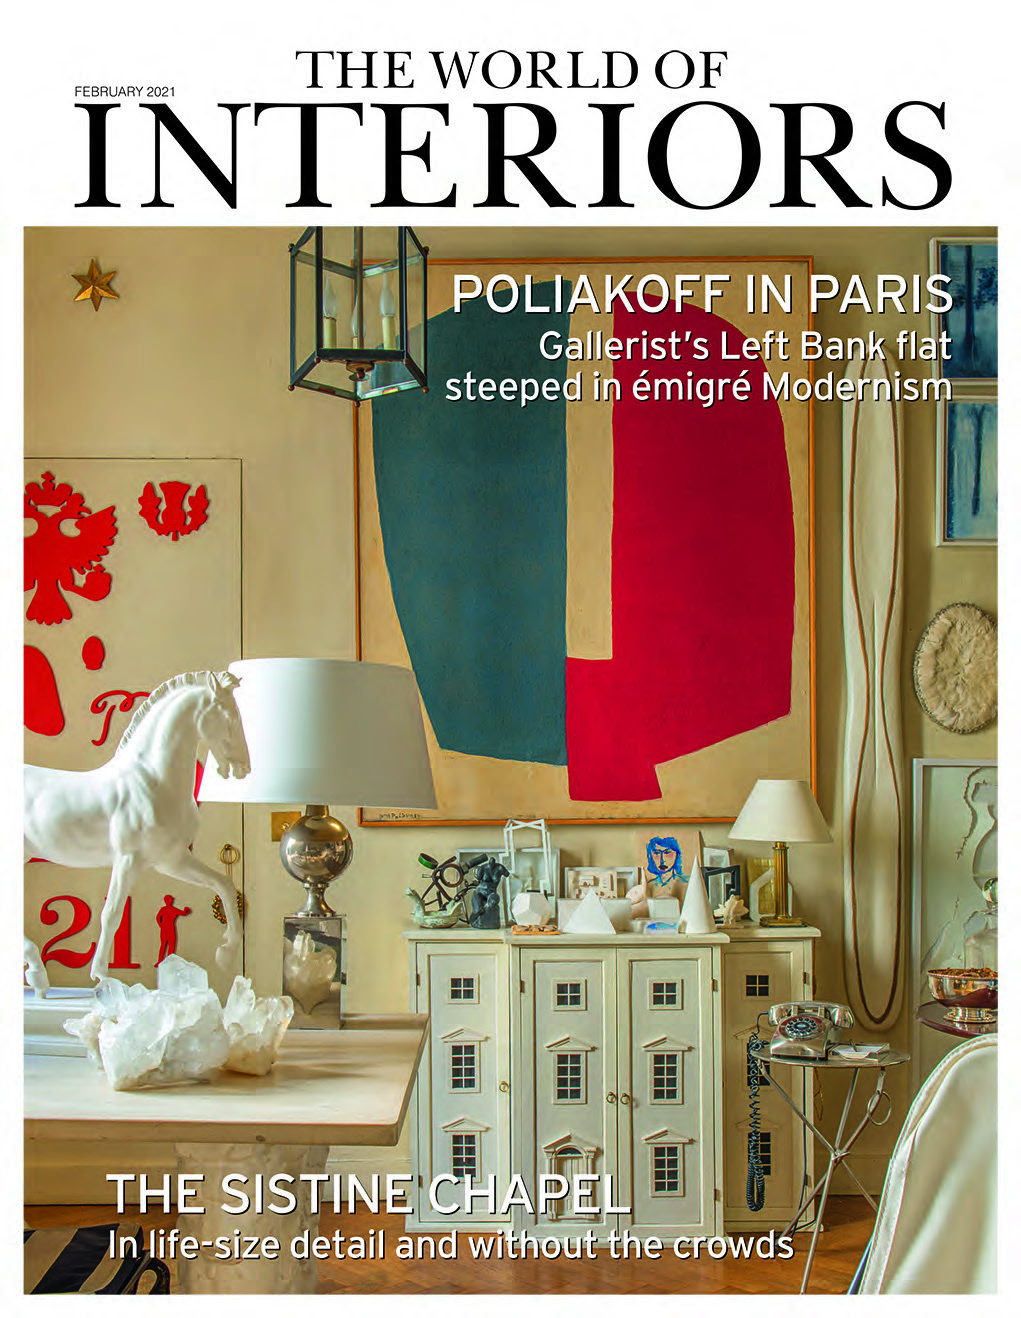 World_of_Interiors_2021_February_LR2 (1)_Page_01